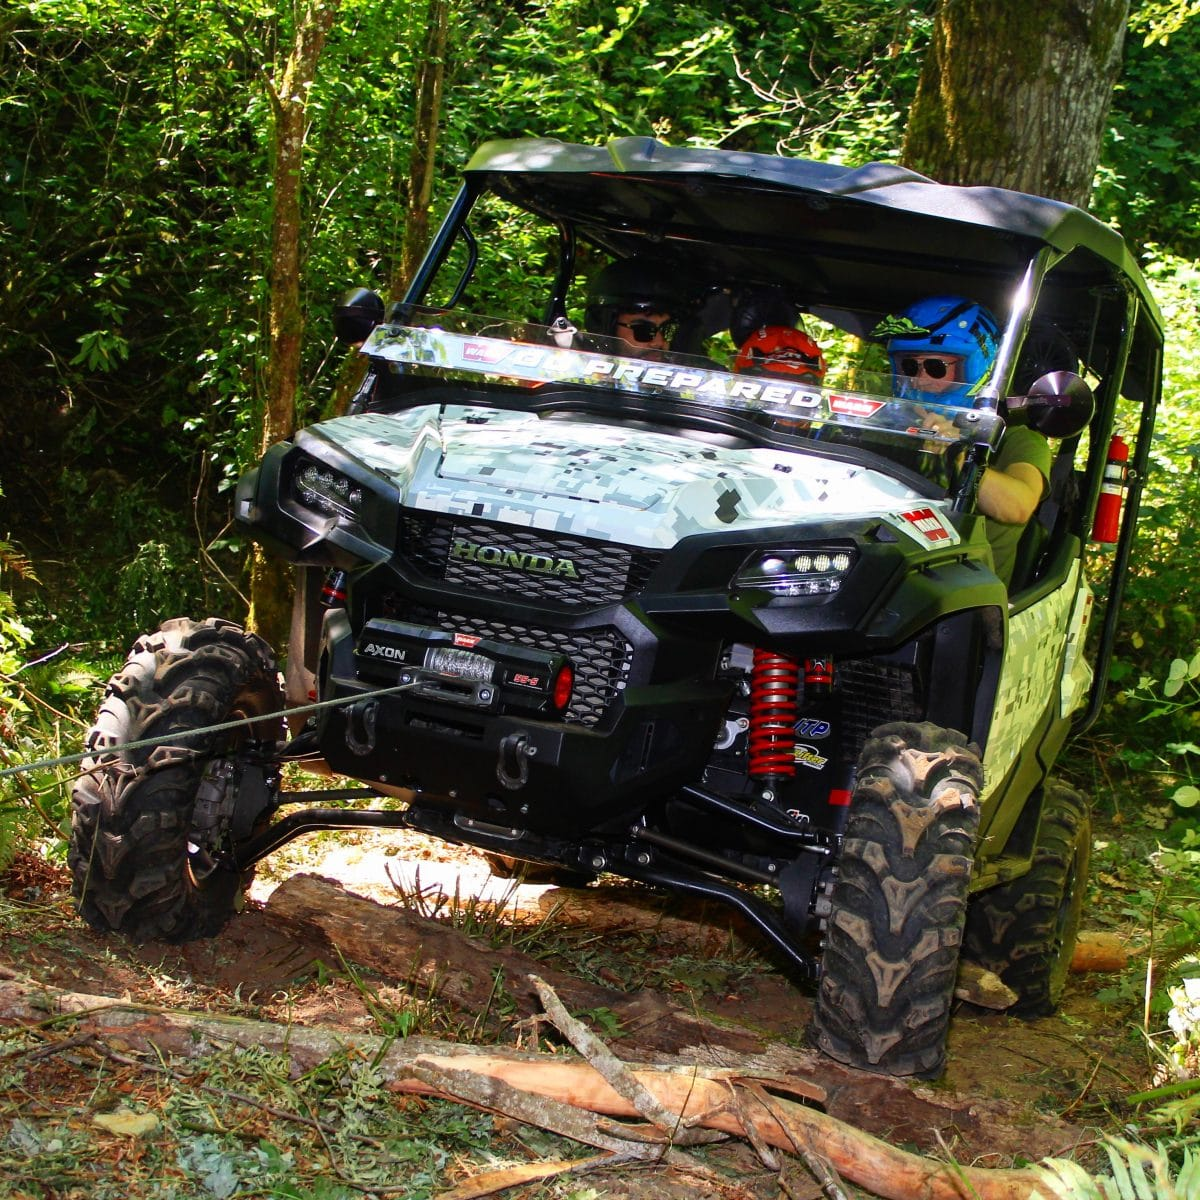 Impressive Allnew Warn Winch Lineup Dirt Wheels Magazine. The Axom Line Is Durable Ip68 Waterproof Sealed And Nice To Look At. ATV. 2015 ATV Warn Winch Wiring At Scoala.co